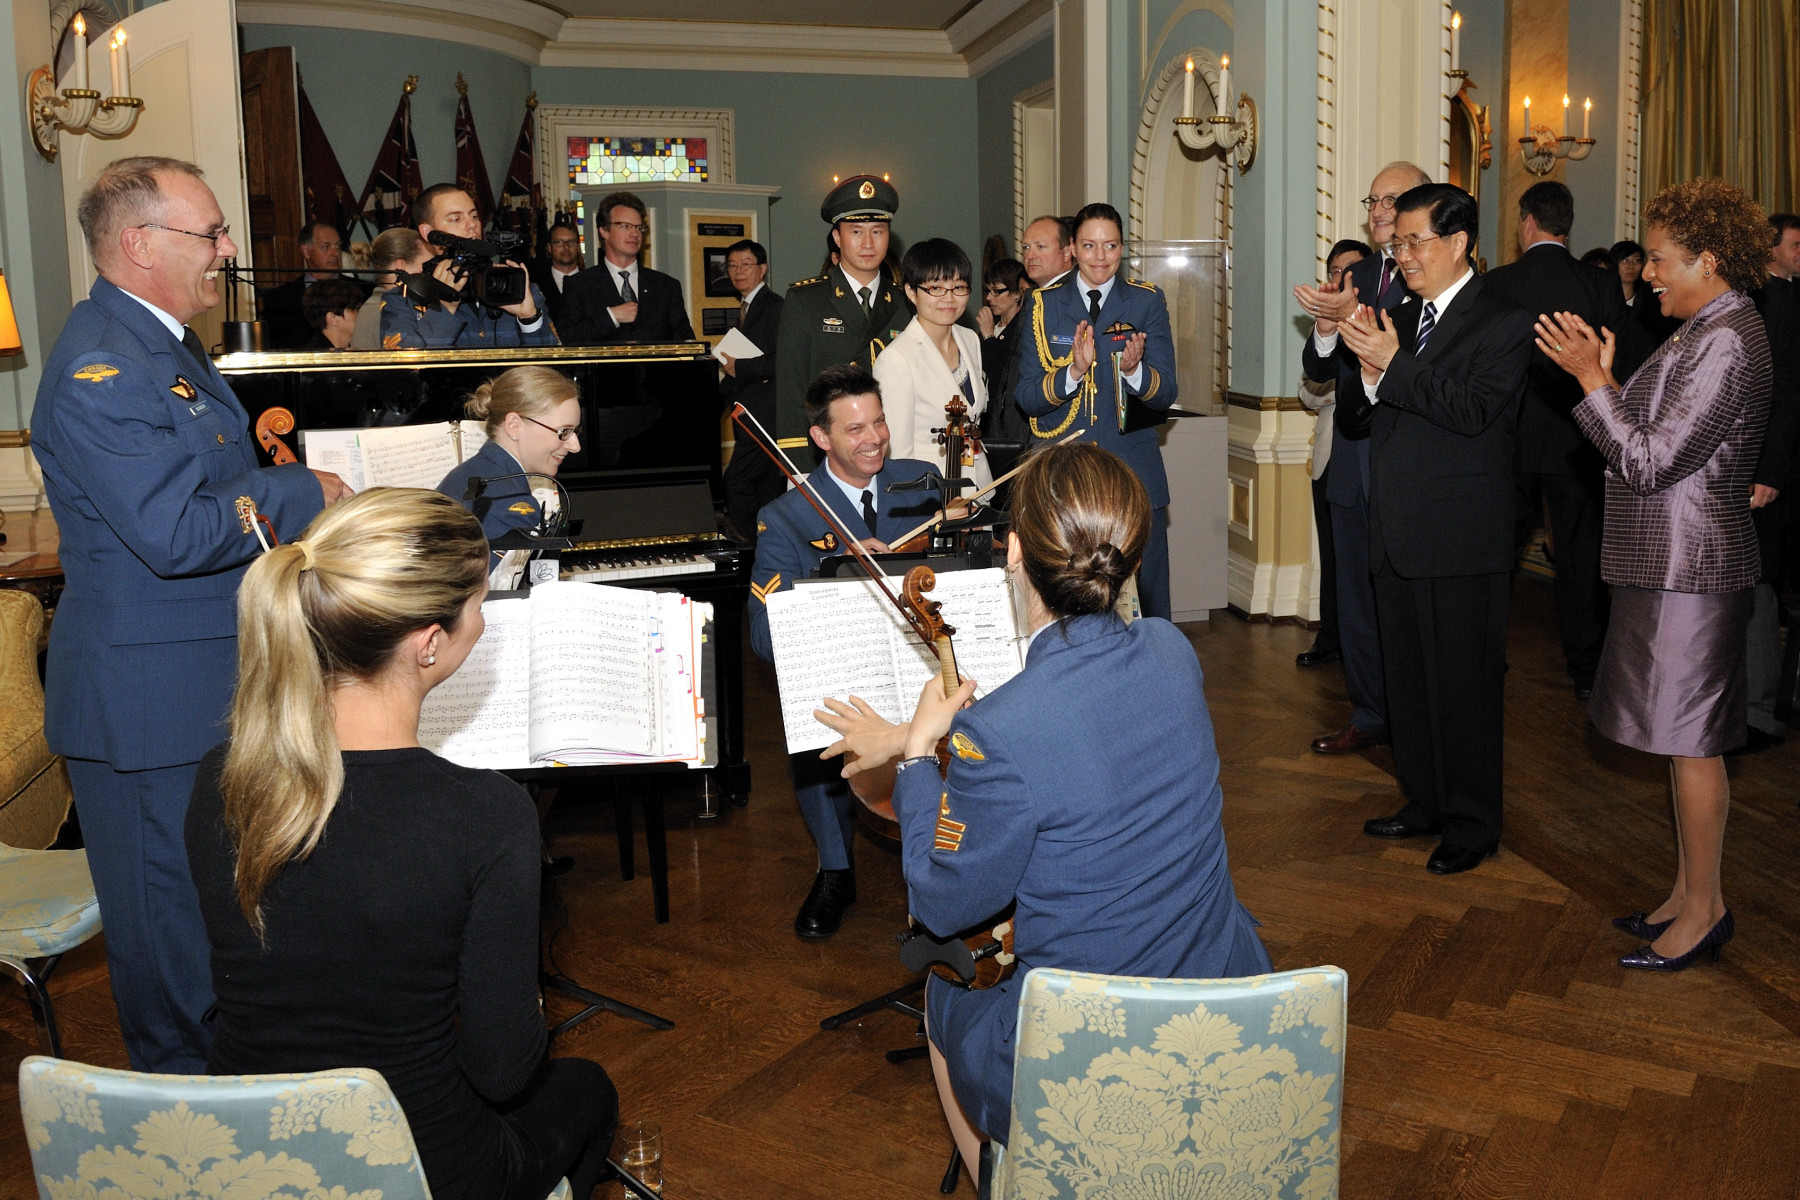 The Governor General and the President applauded the very talented musicians who played during the luncheon.